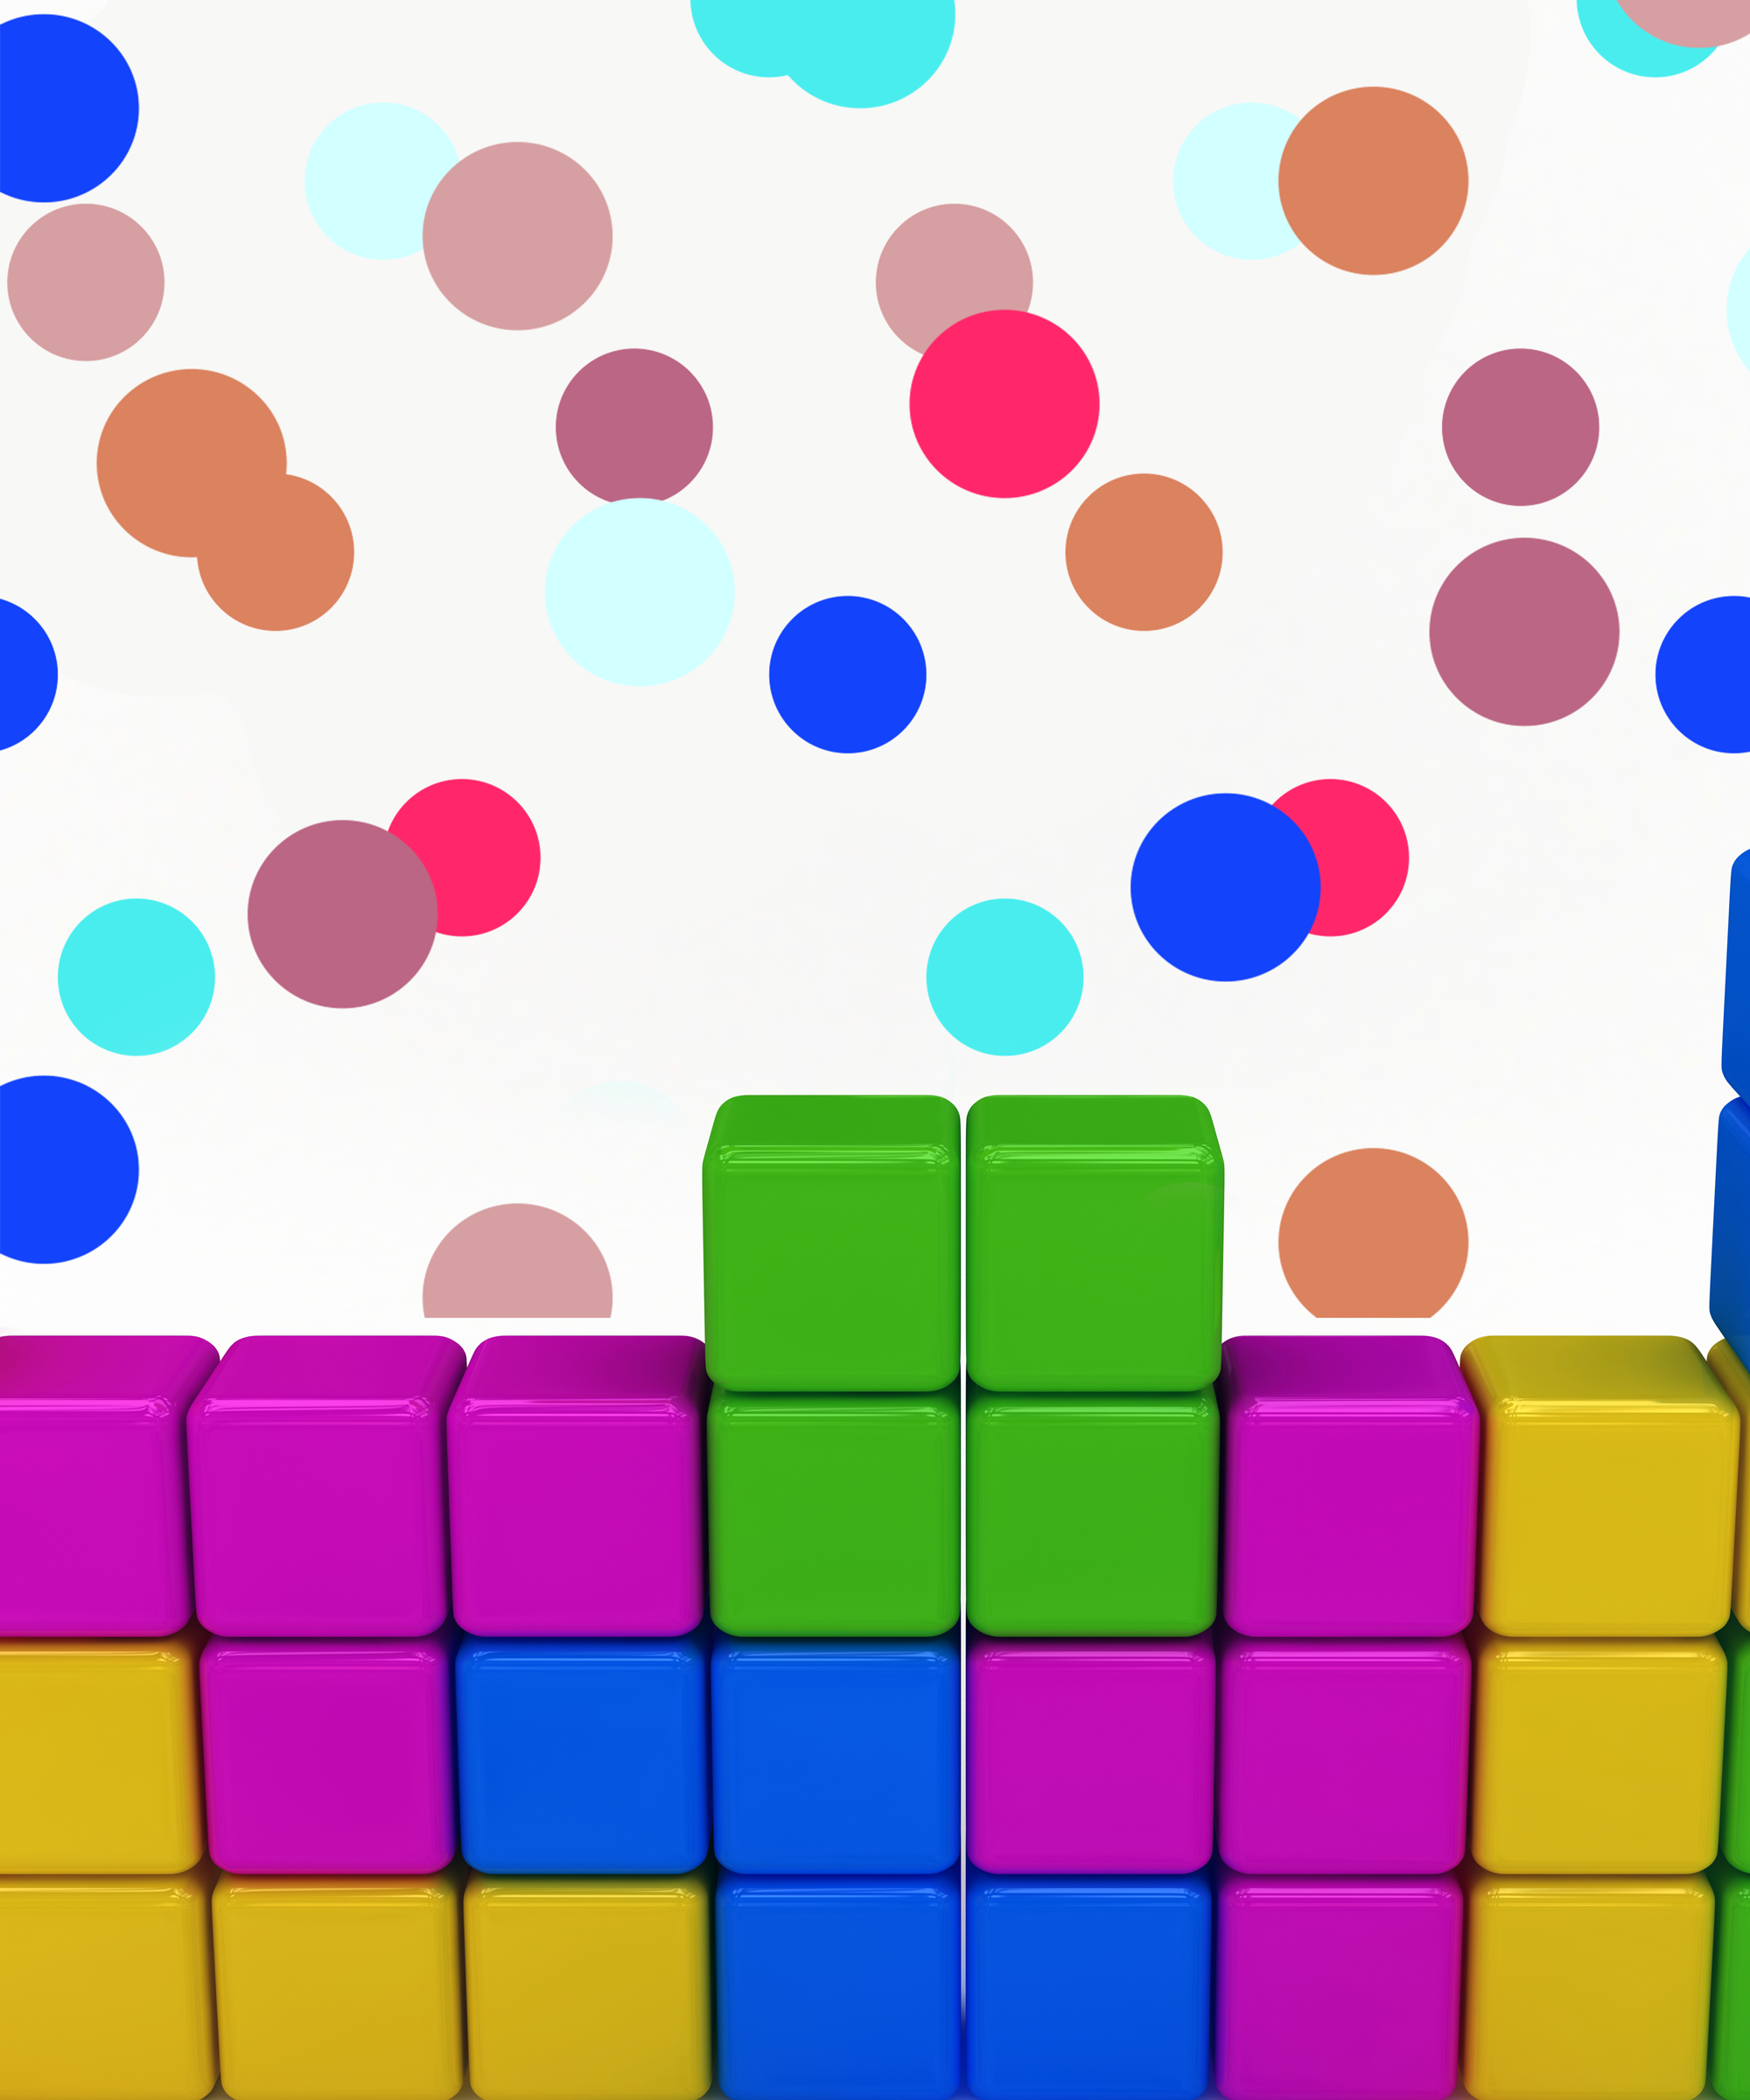 Tetris And Its Revolutionary Medical Breakthrough Regarding PTSD